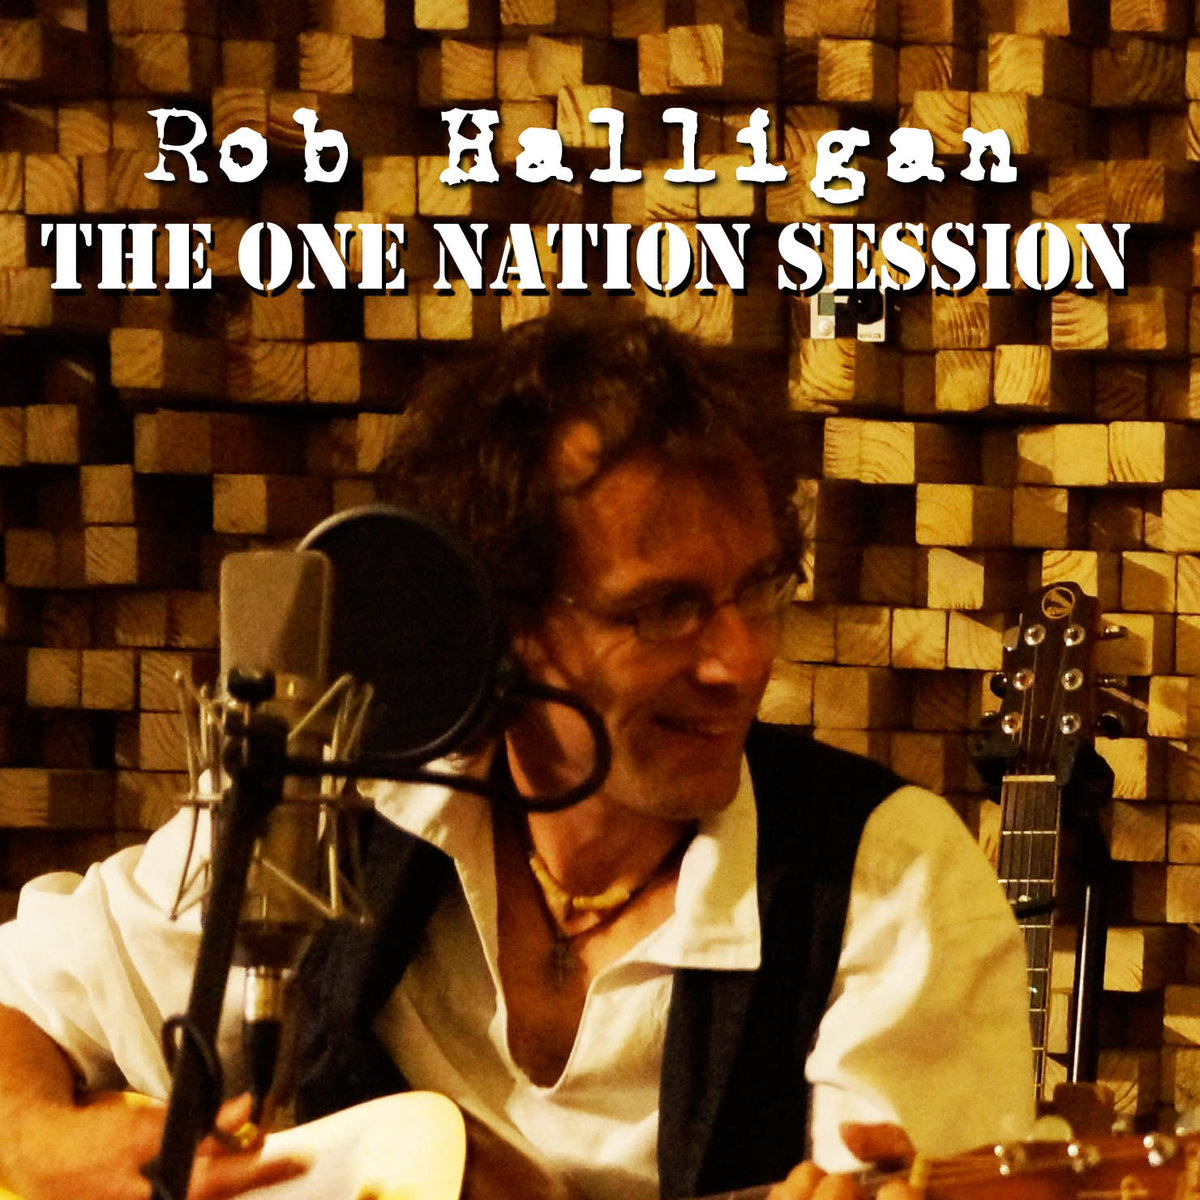 One Nation Session